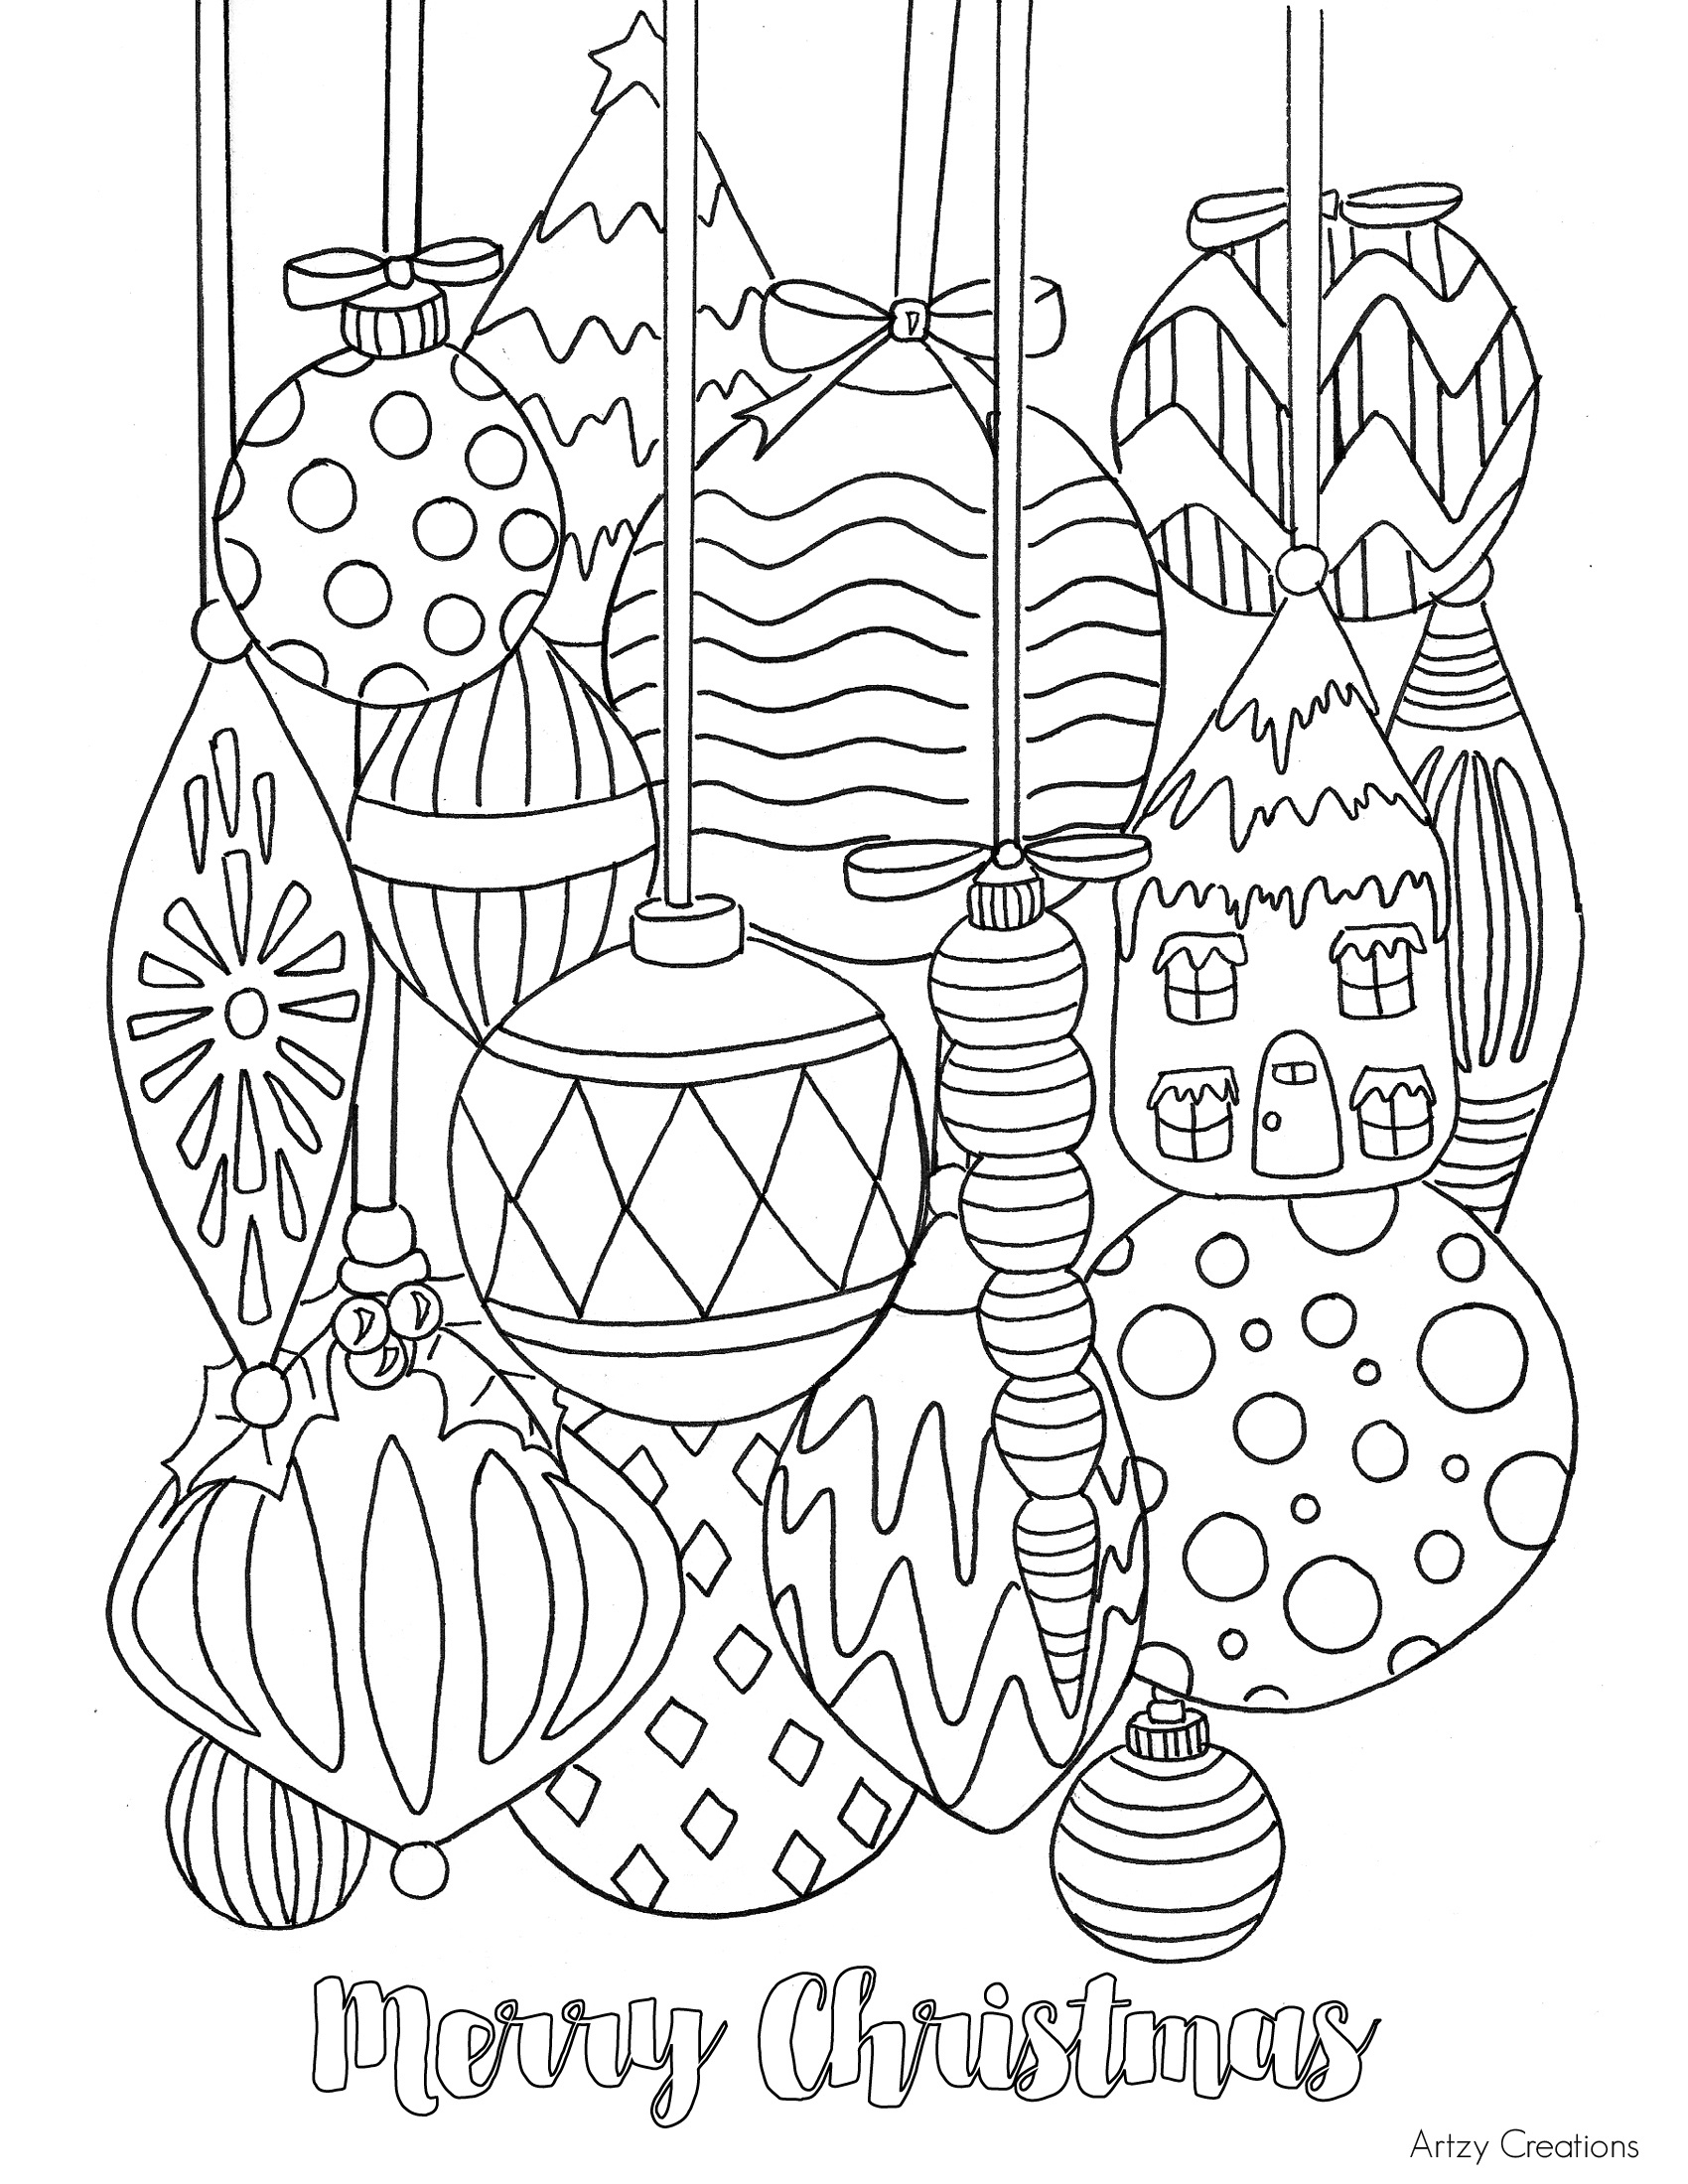 Free Christmas Ornament Coloring Page - Tgif - This Grandma Is Fun - Free Printable Christmas Ornament Coloring Pages